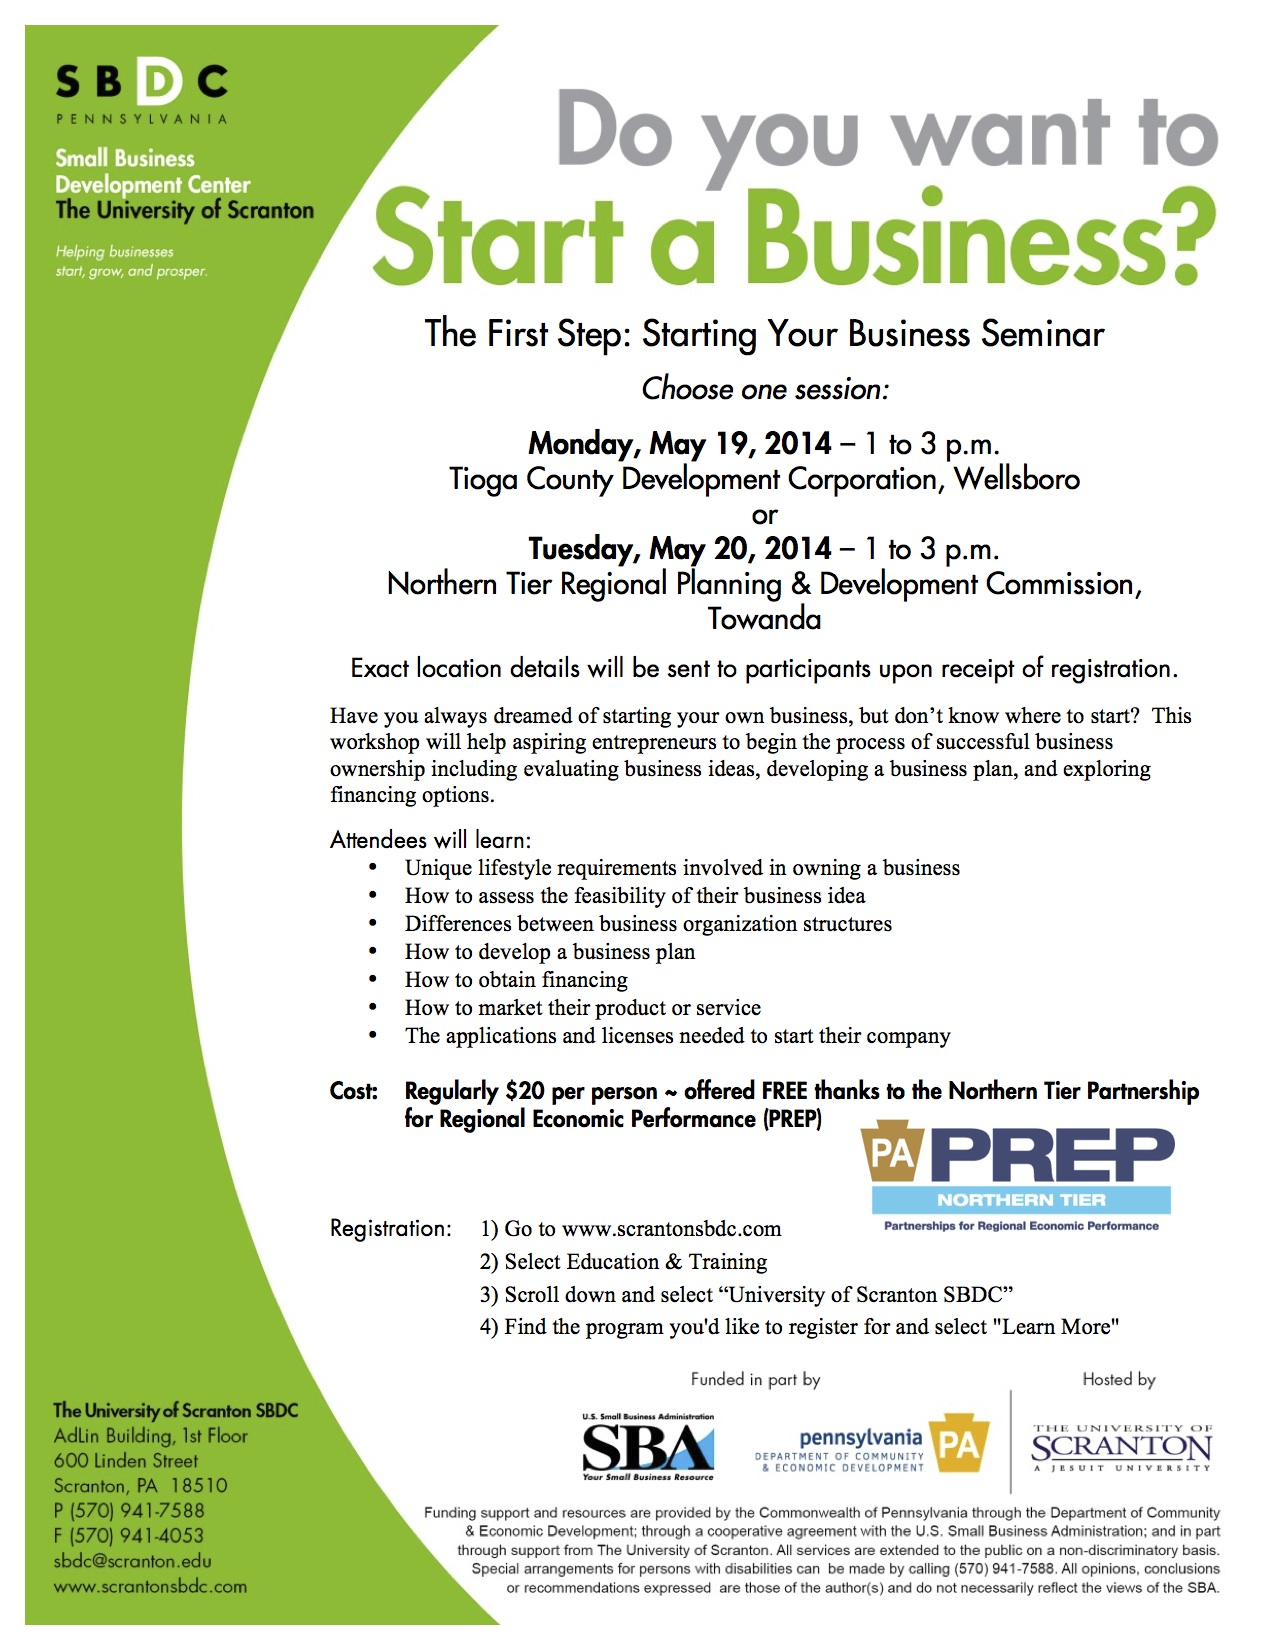 Starting a Business in Bradford or Tioga County PA? The University of Scranton SBDC can help?